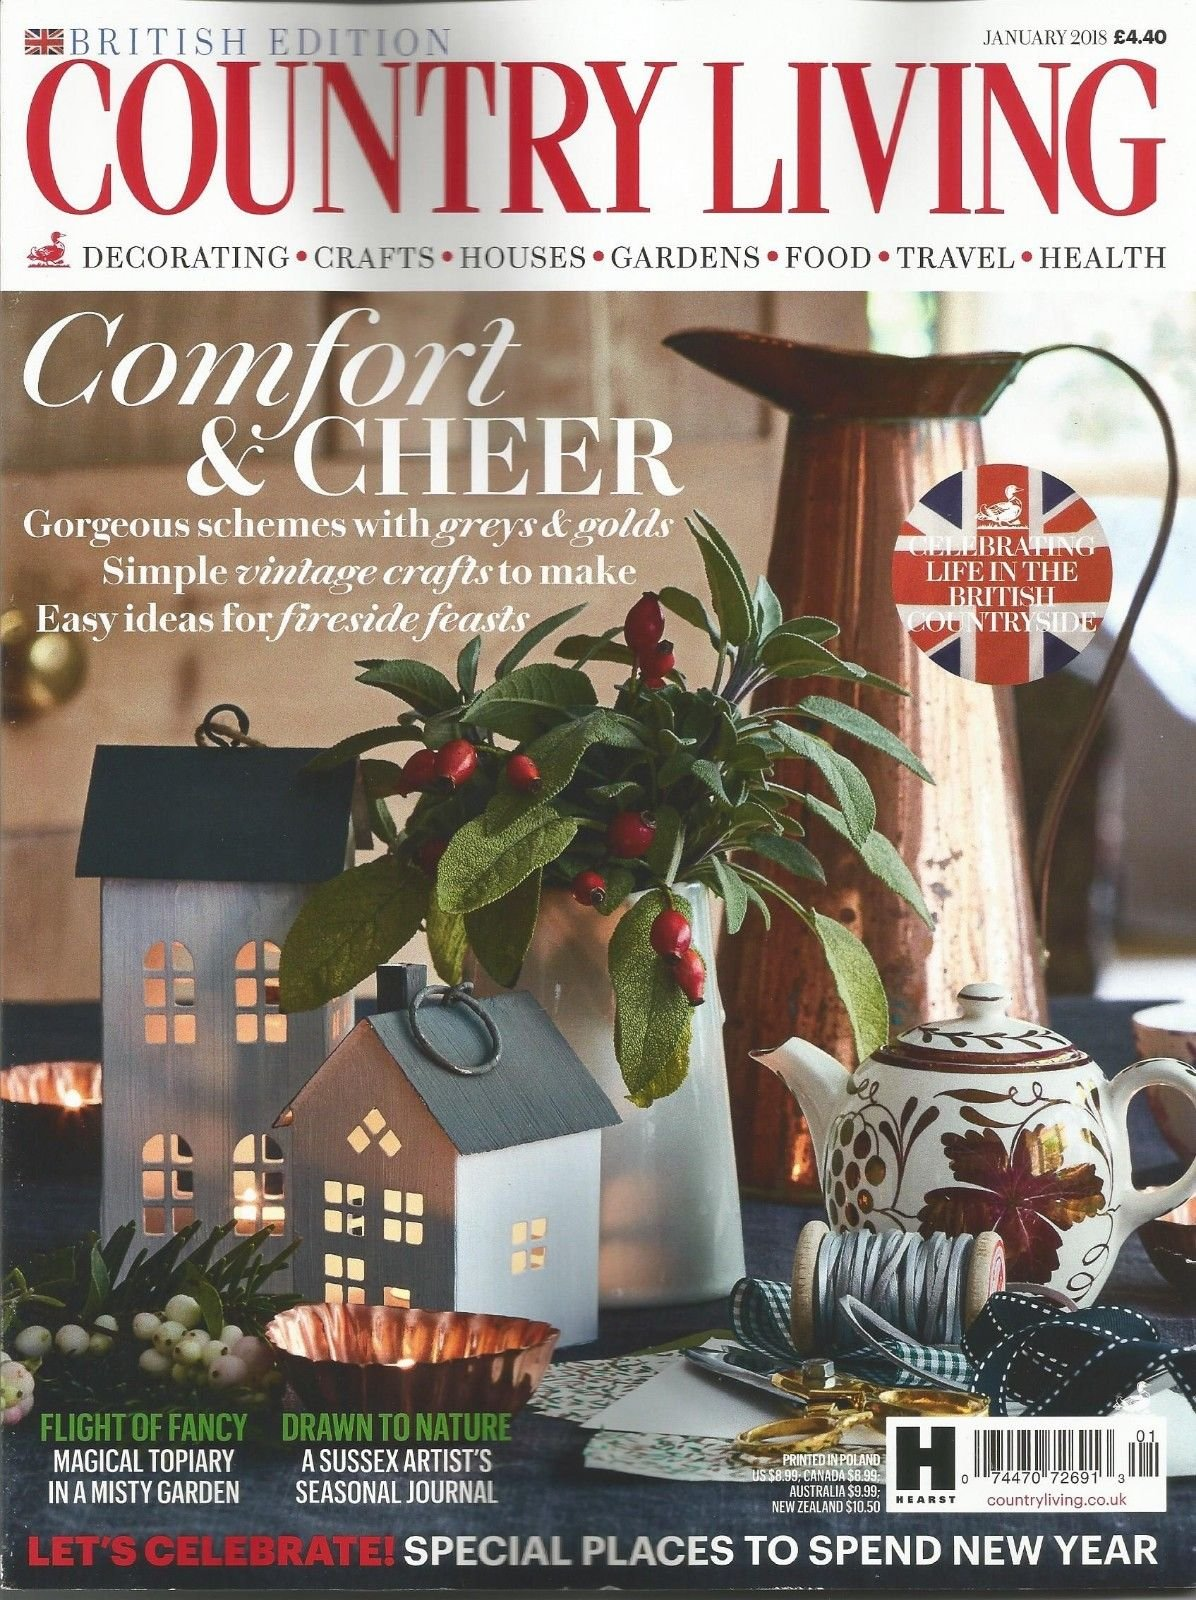 COUNTRY LIVING MAGAZINE, JANUARY, 2018 BRITISH EDITION